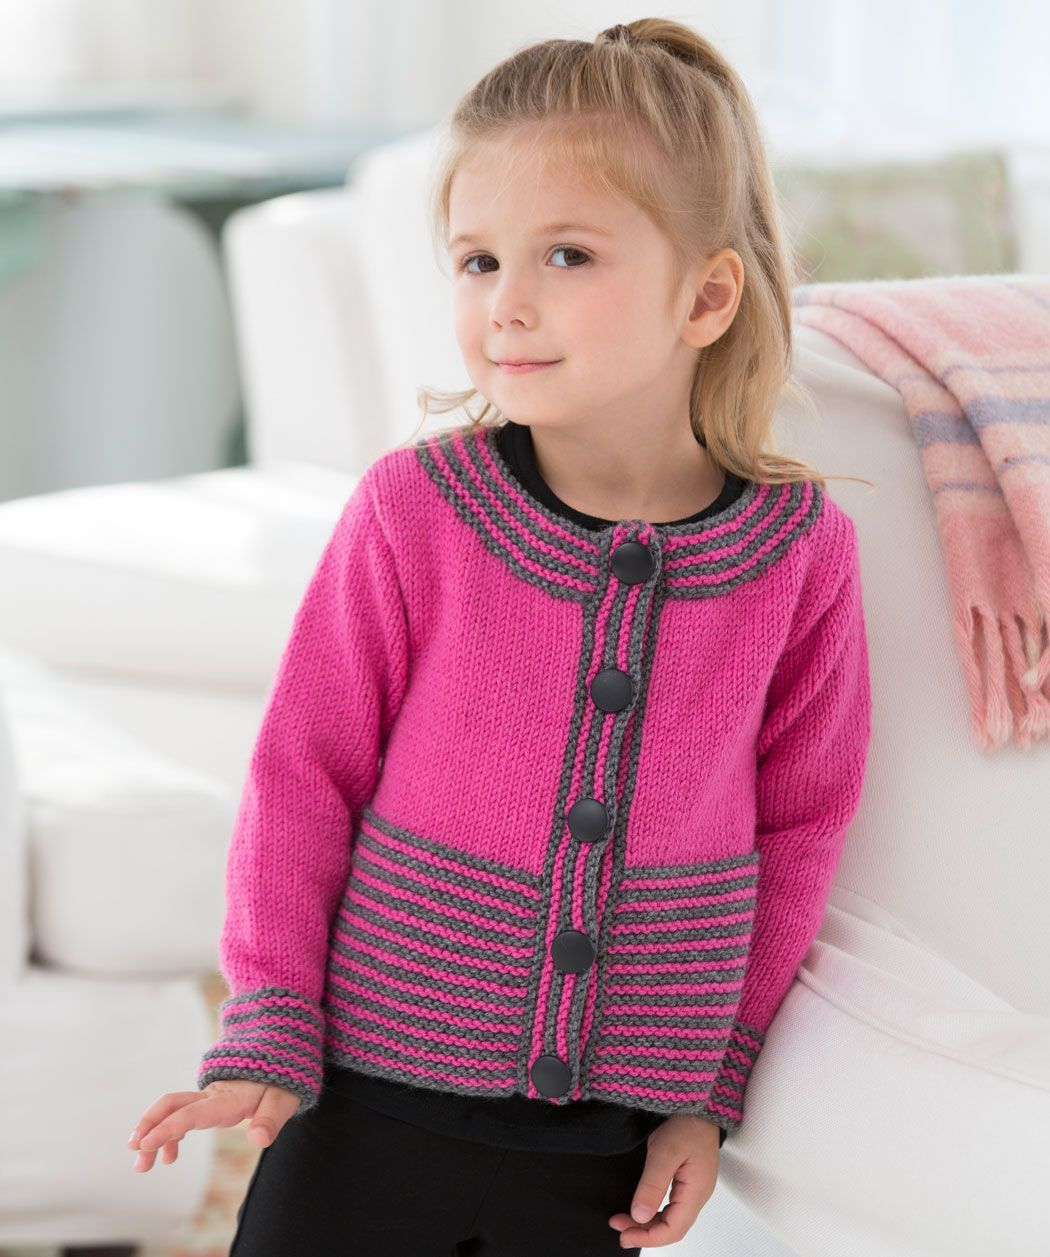 ae3e71f6c This cute cardigan is perfect to make for a little girl who is ...